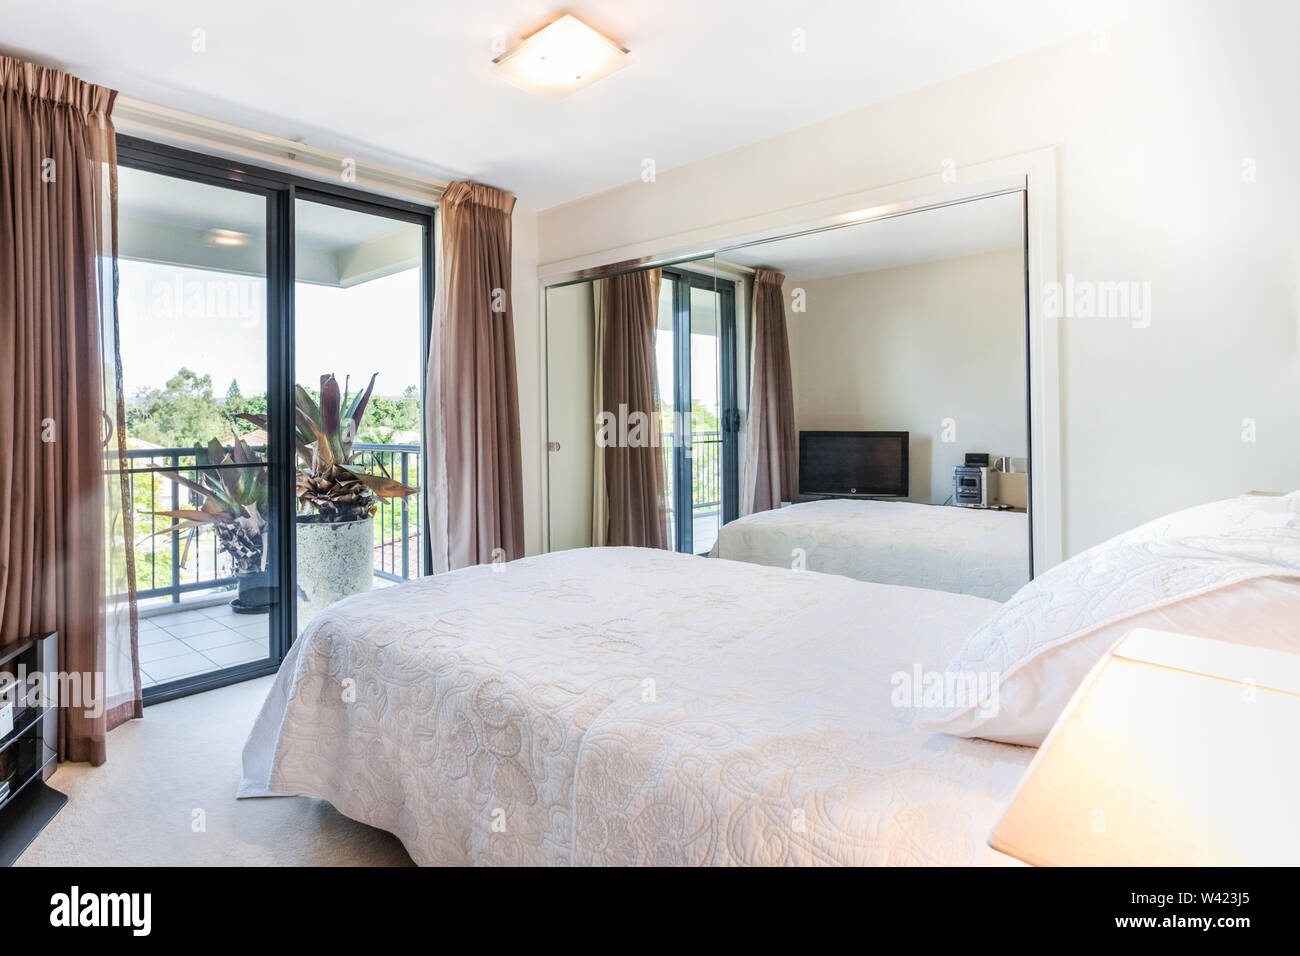 A Bedroom With A Comfortable Bed And A Large Mirror Along With A Large Balcony Area Outside Stock Photo Alamy